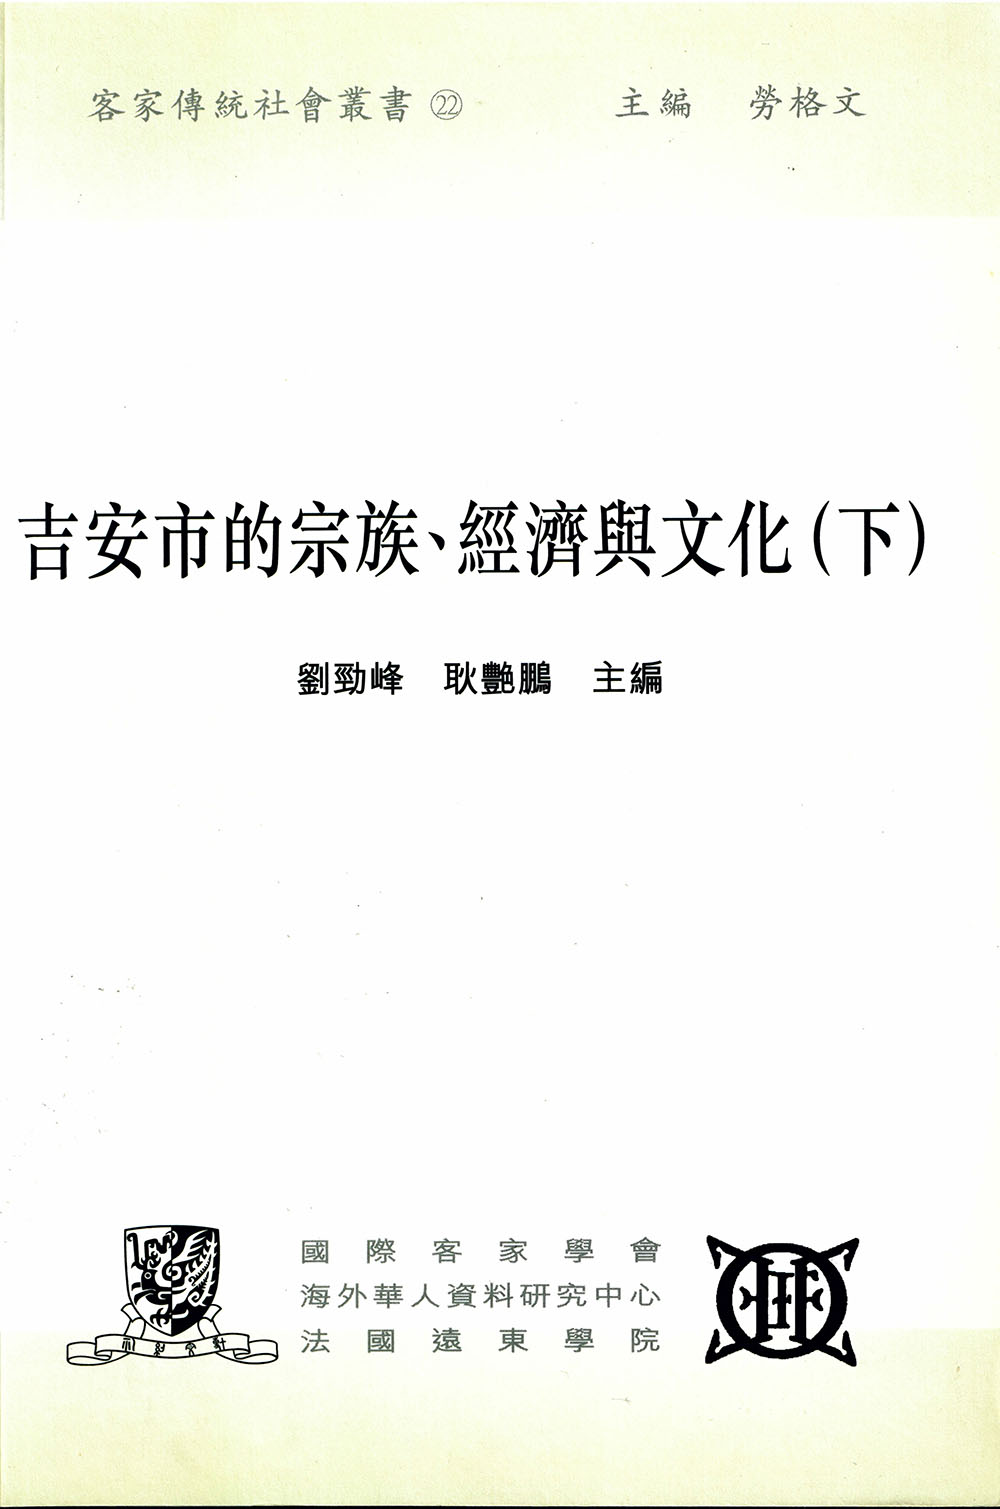 Ji'an shi de zong jiao, jing ji yu wen hua (xia) = Lineage, Economy and Culture in Ji'an (volume 2)